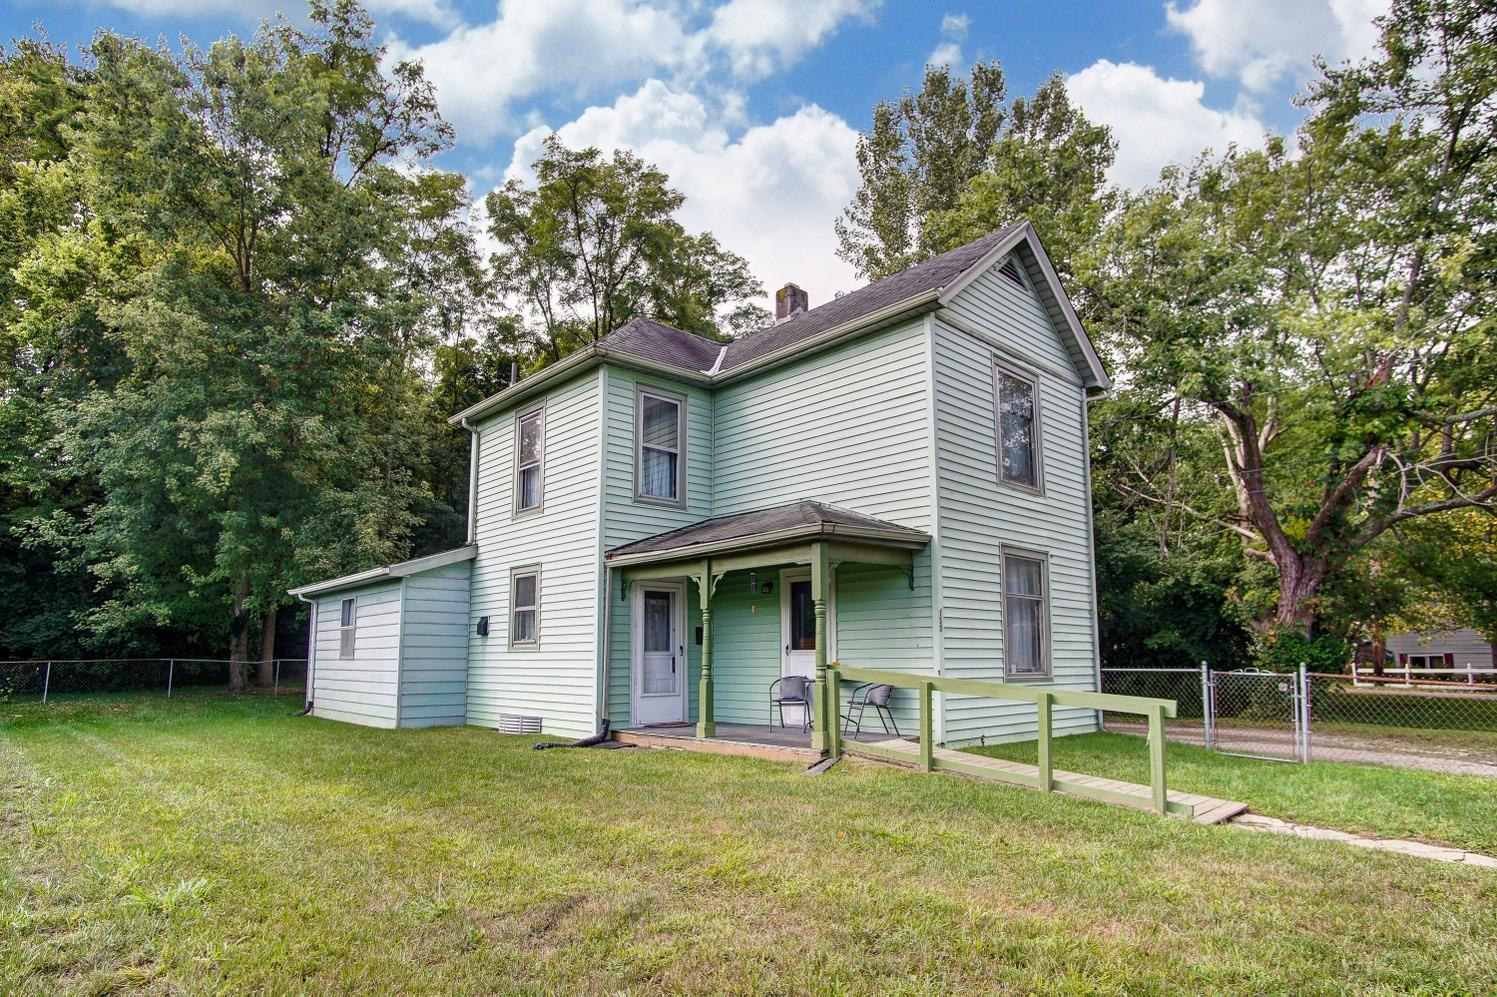 Photo 3 for 133 Mt Nebo Rd Cleves, OH 45002